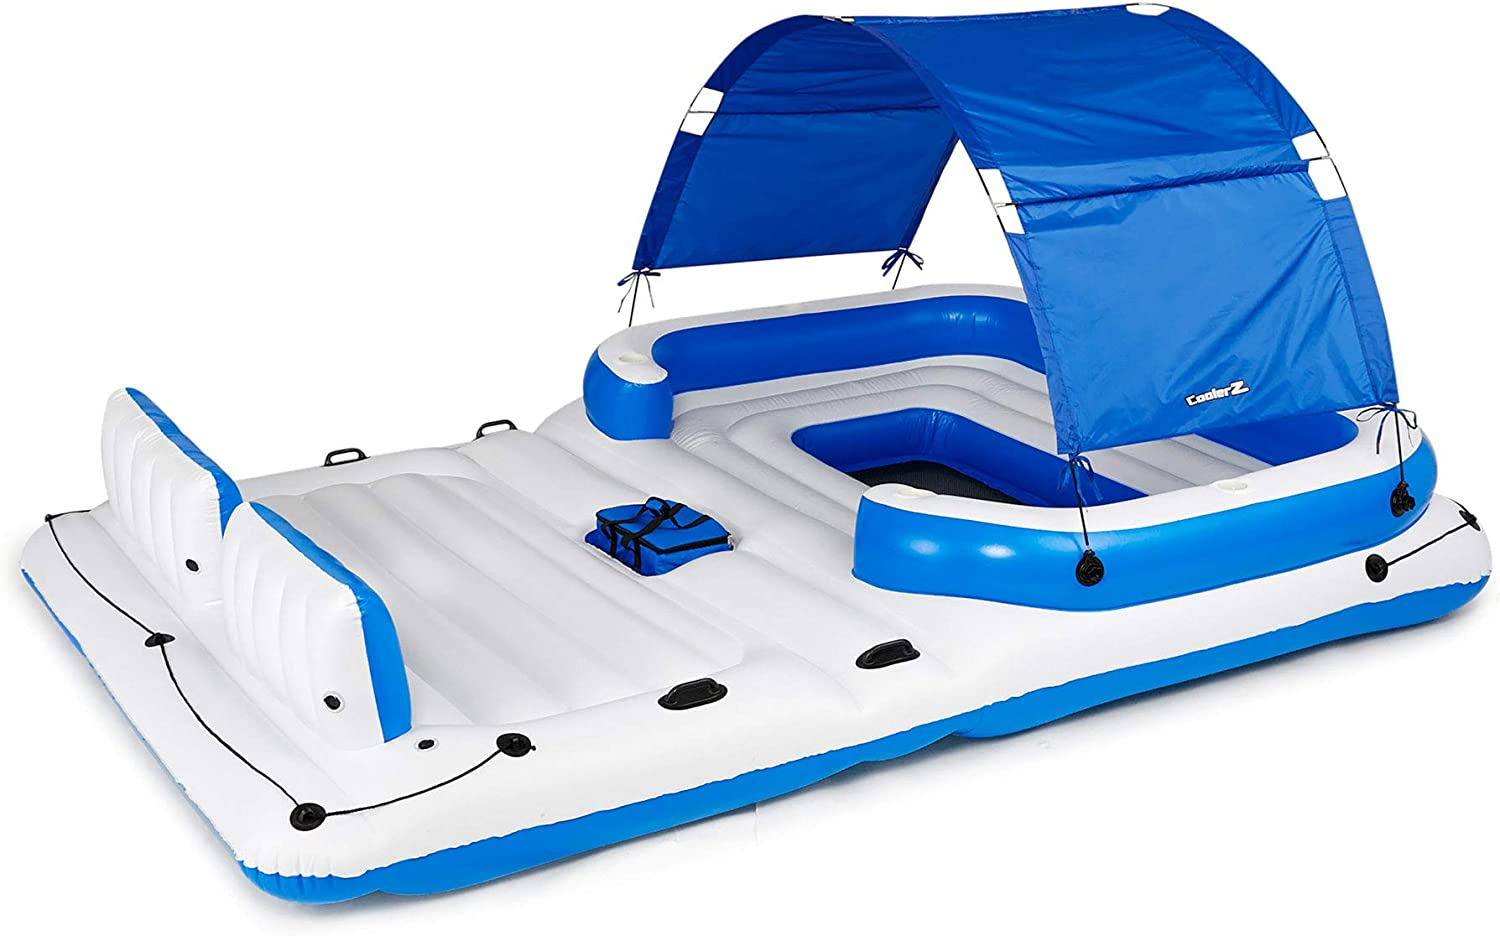 B0009V89NK Bestway CoolerZ Tropical Breeze Floating Island Raft | Giant Inflatable Pool Float For Adults | Includes Canopy, Cupholders, & Cooler Bag | Lounge Fitsup to 6 People | Great For Pool, Lake, River, OC 71VllCRJOnL.SL1500_